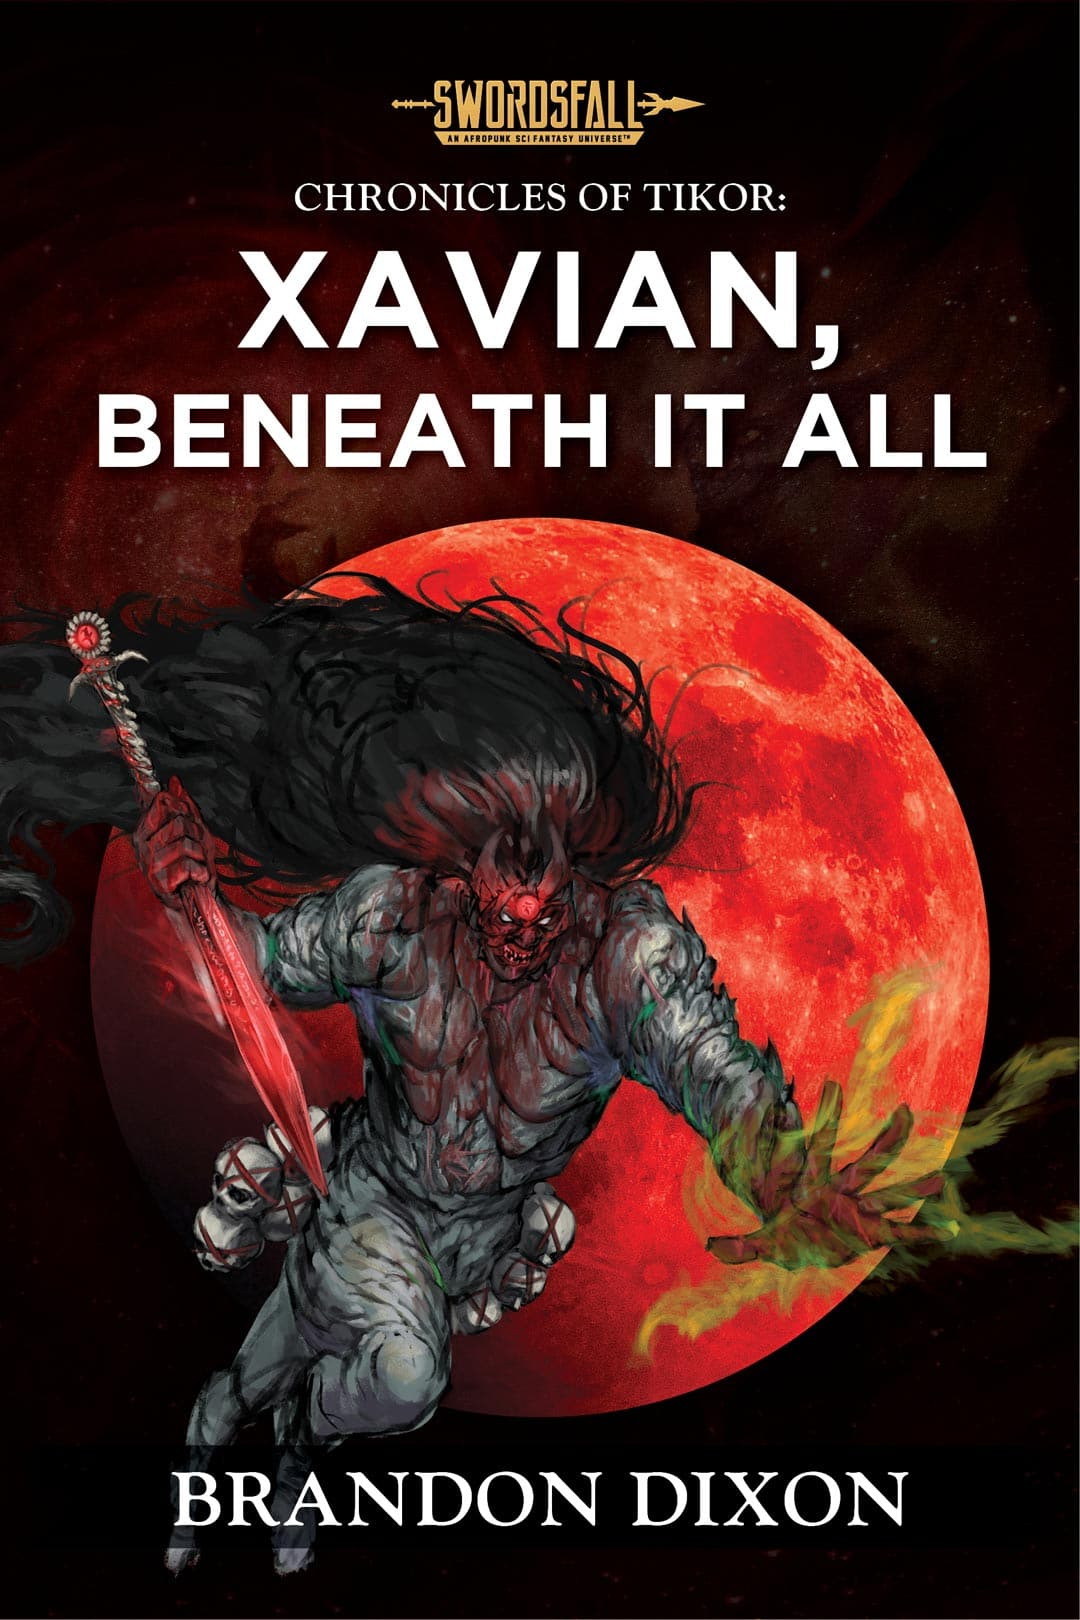 Xavian, The Withering King: A Swordsfall Lore Book (The Chronicles of Tikor) - Swordsfall